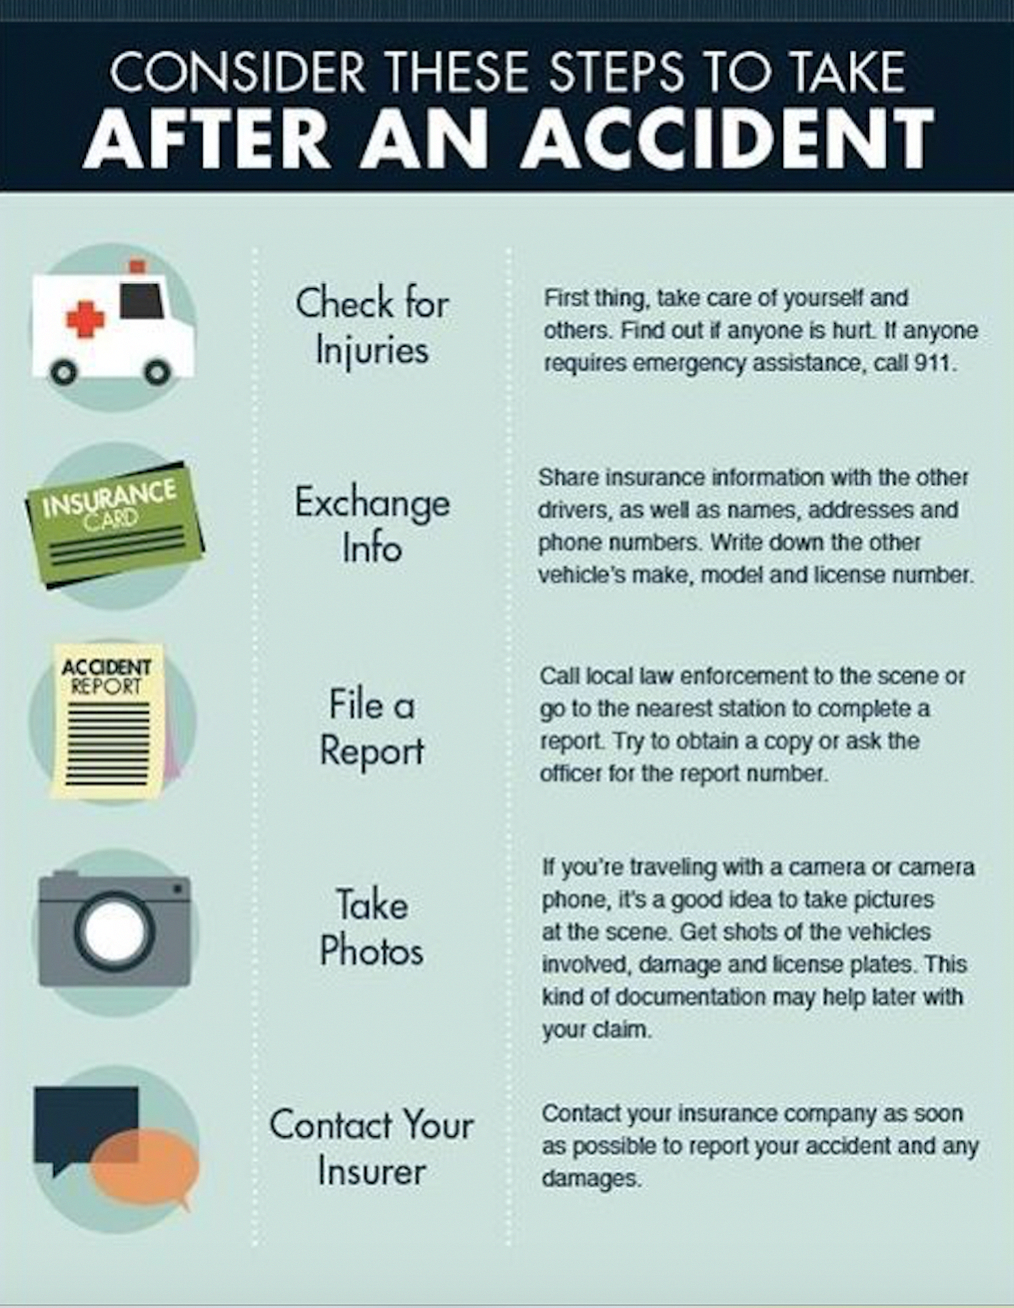 In The Case Of An Accident Remember These 5 Easy Steps That Will Keep You Safe Accident Safety Tips Car Essentials Car Care Tips Car Insurance